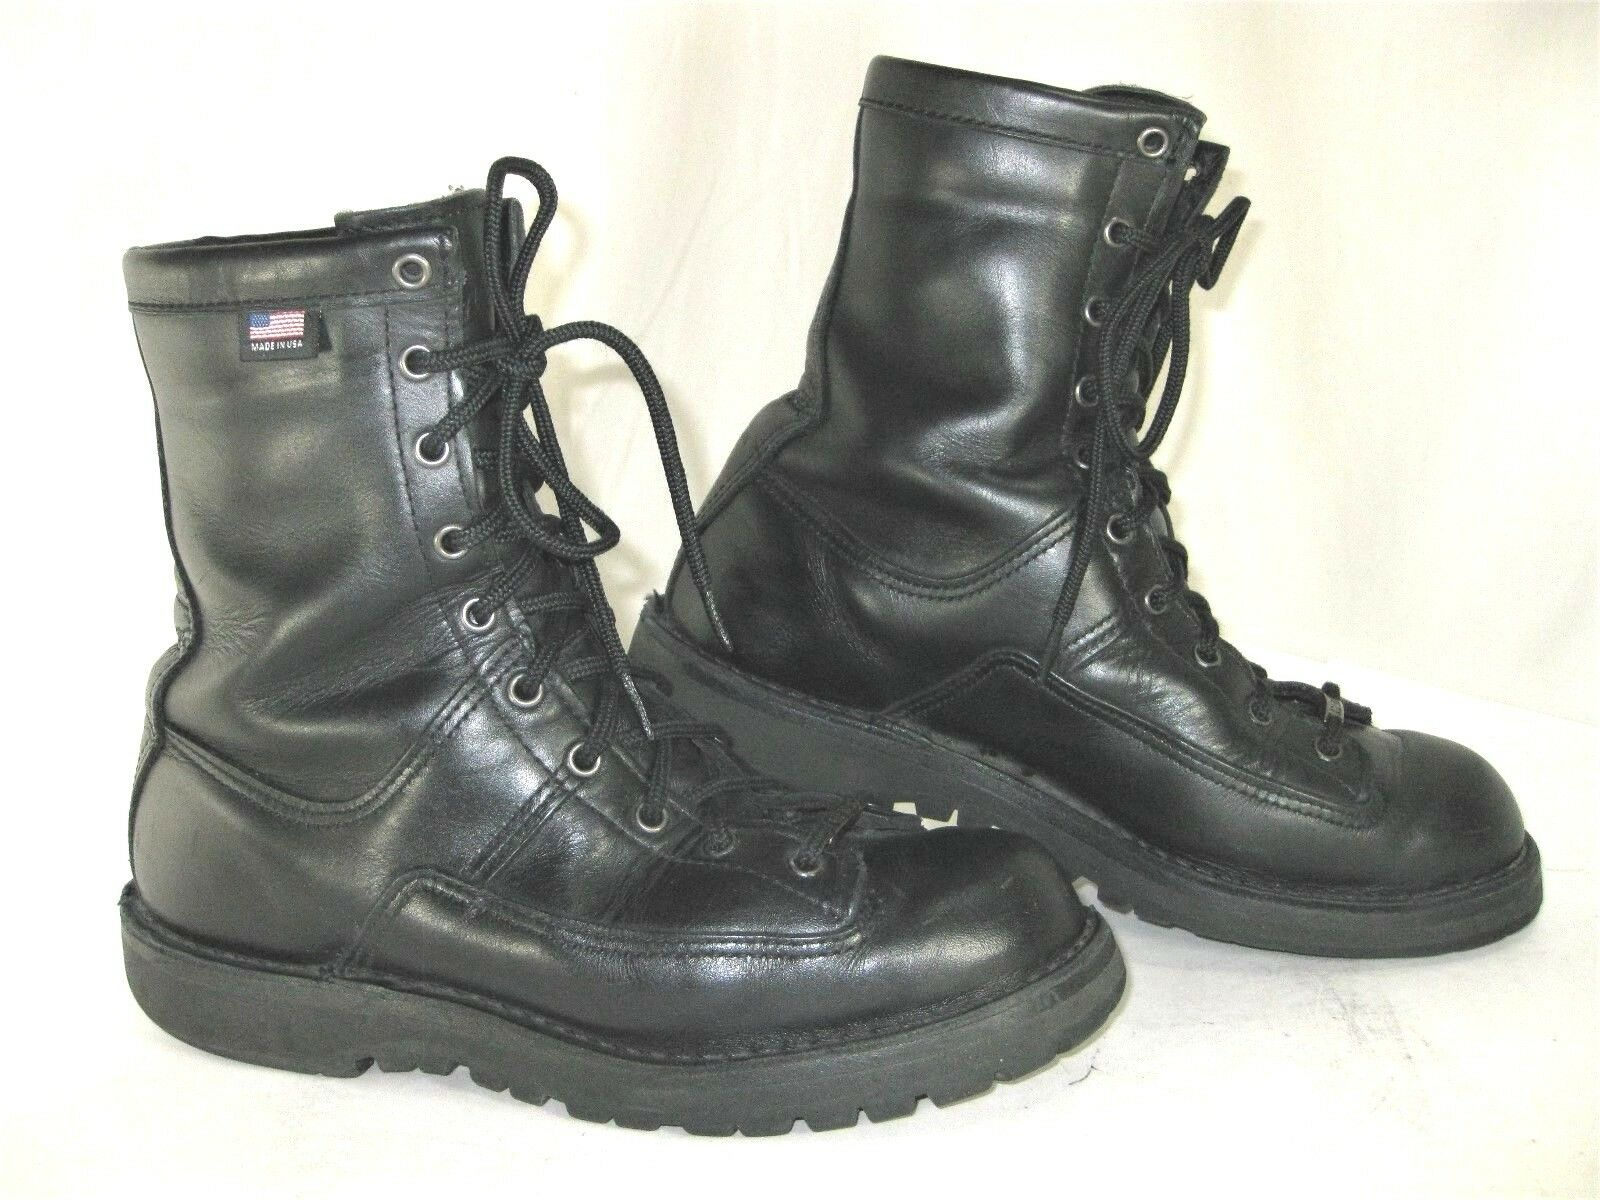 DANNER Boot Black Lace Up Mens 8 D 69410 200G GTX Recon USA Duty Work Combat